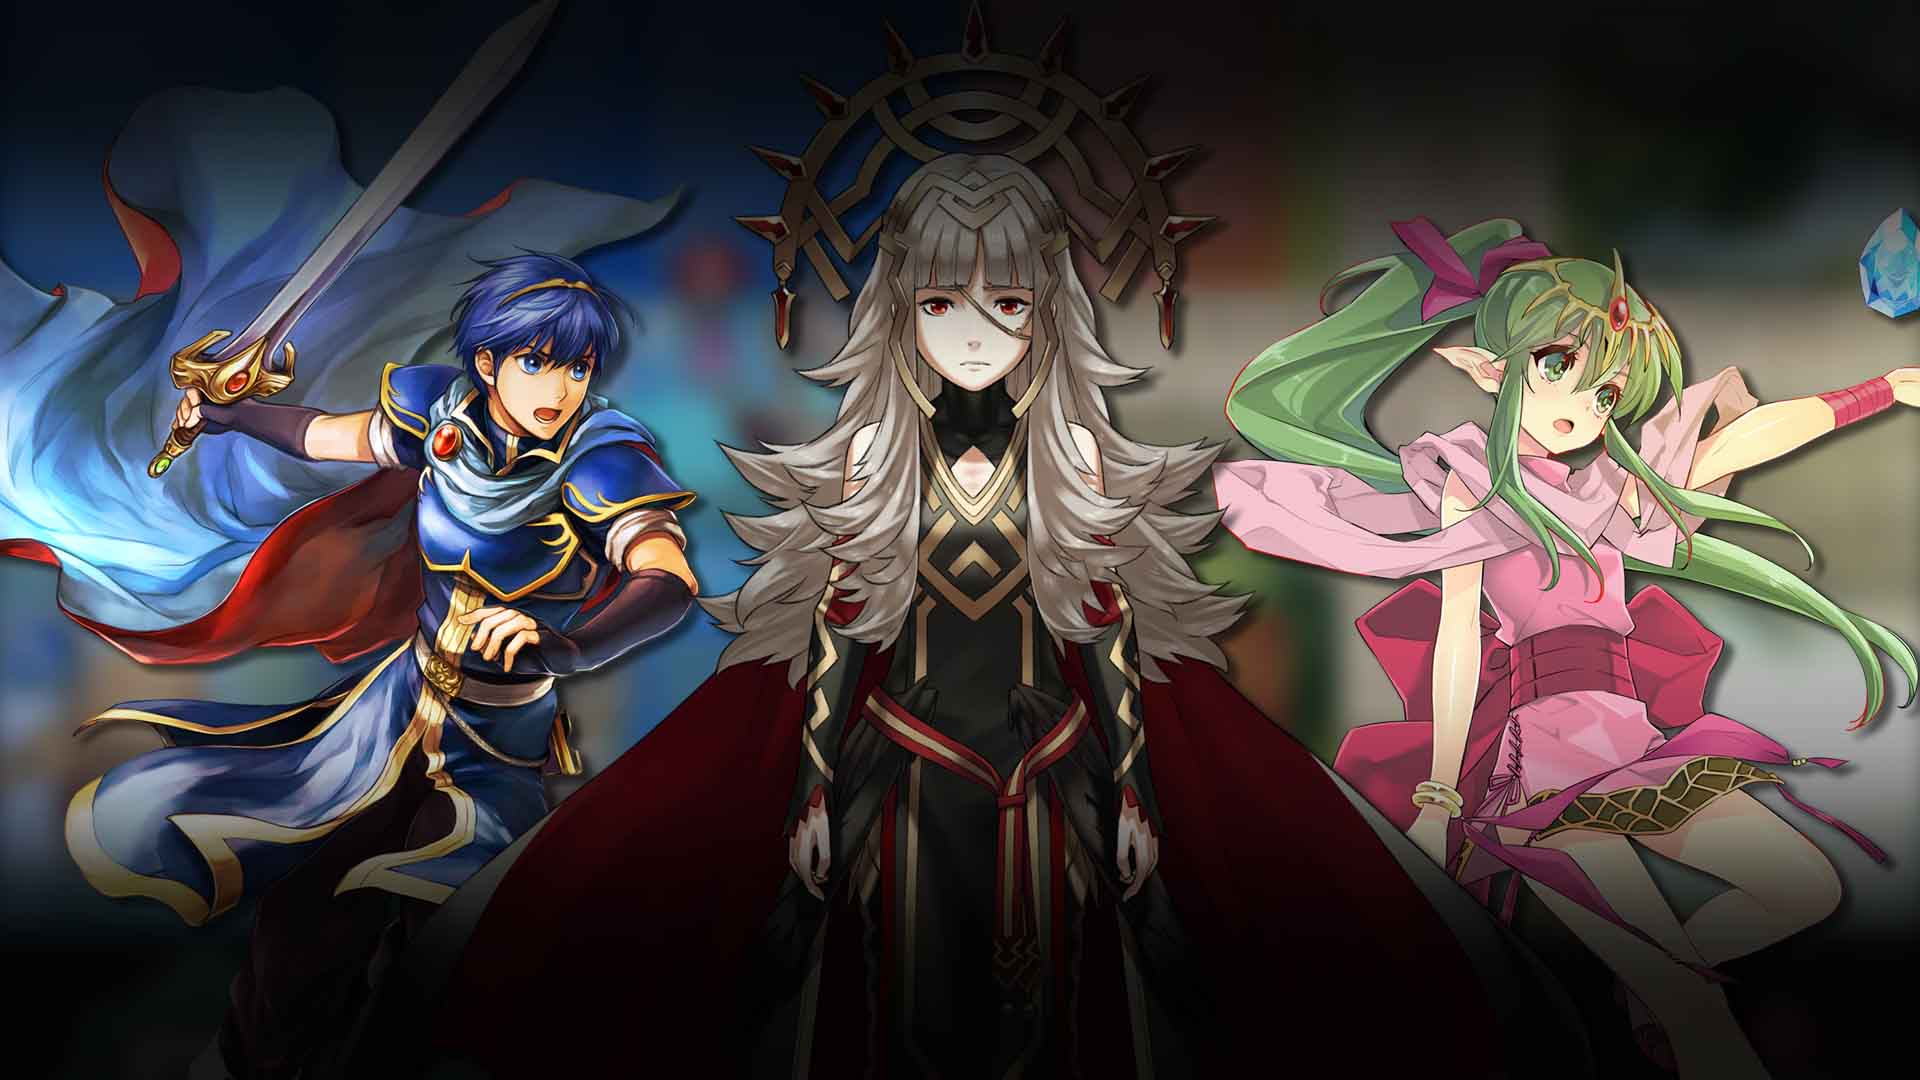 Wild Animal Wallpaper For Mobile May S Fire Emblem Wallpapers Add Hector And Tharja To Your